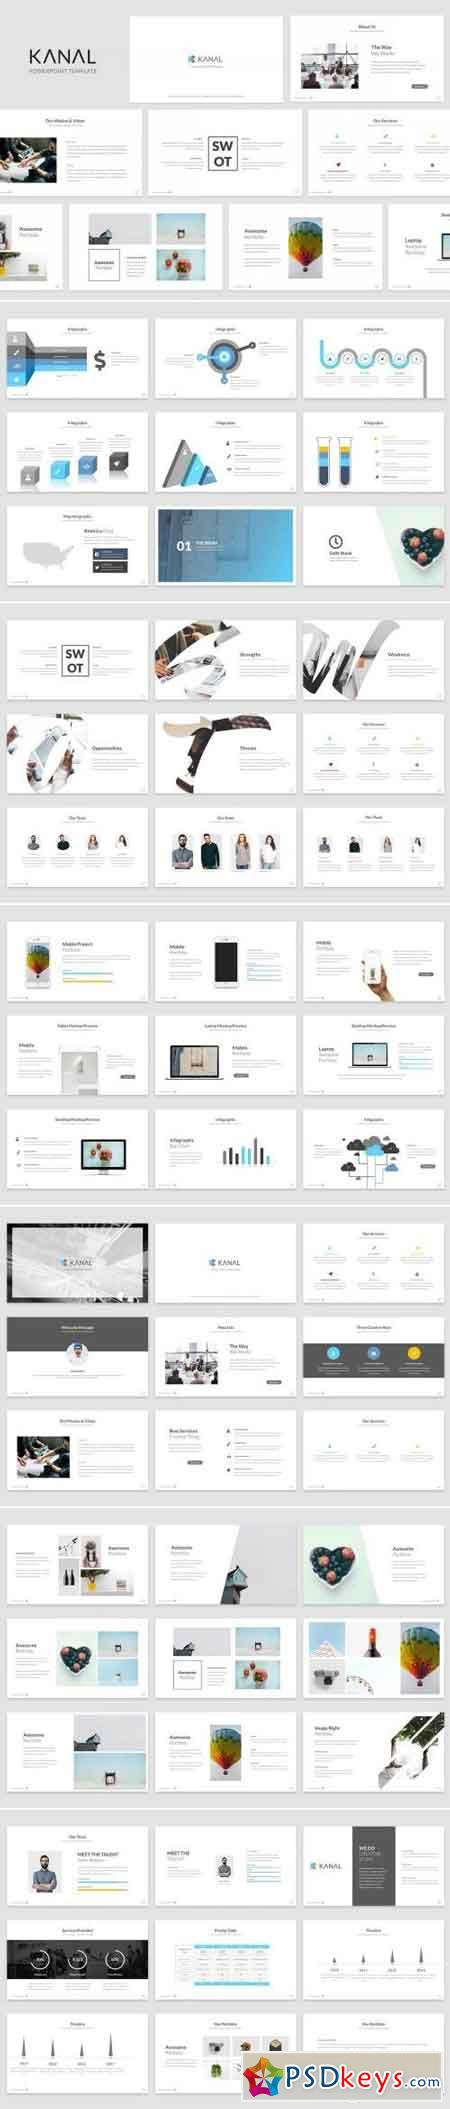 Kanal Powerpoint Template